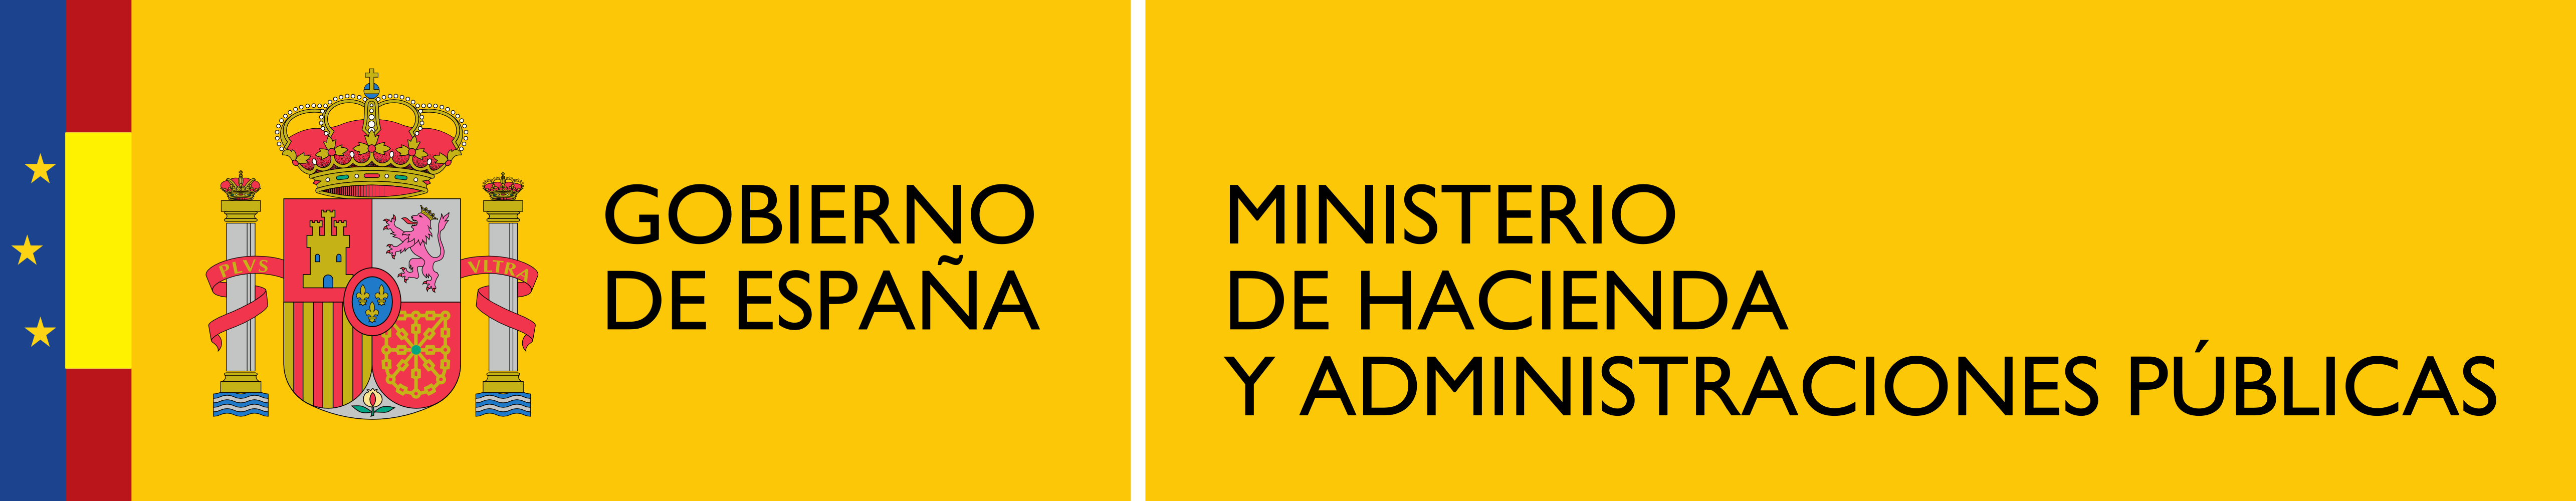 https://i2.wp.com/upload.wikimedia.org/wikipedia/commons/4/40/Logotipo_del_Ministerio_de_Hacienda_y_Admones._P%C3%BAblicas.png